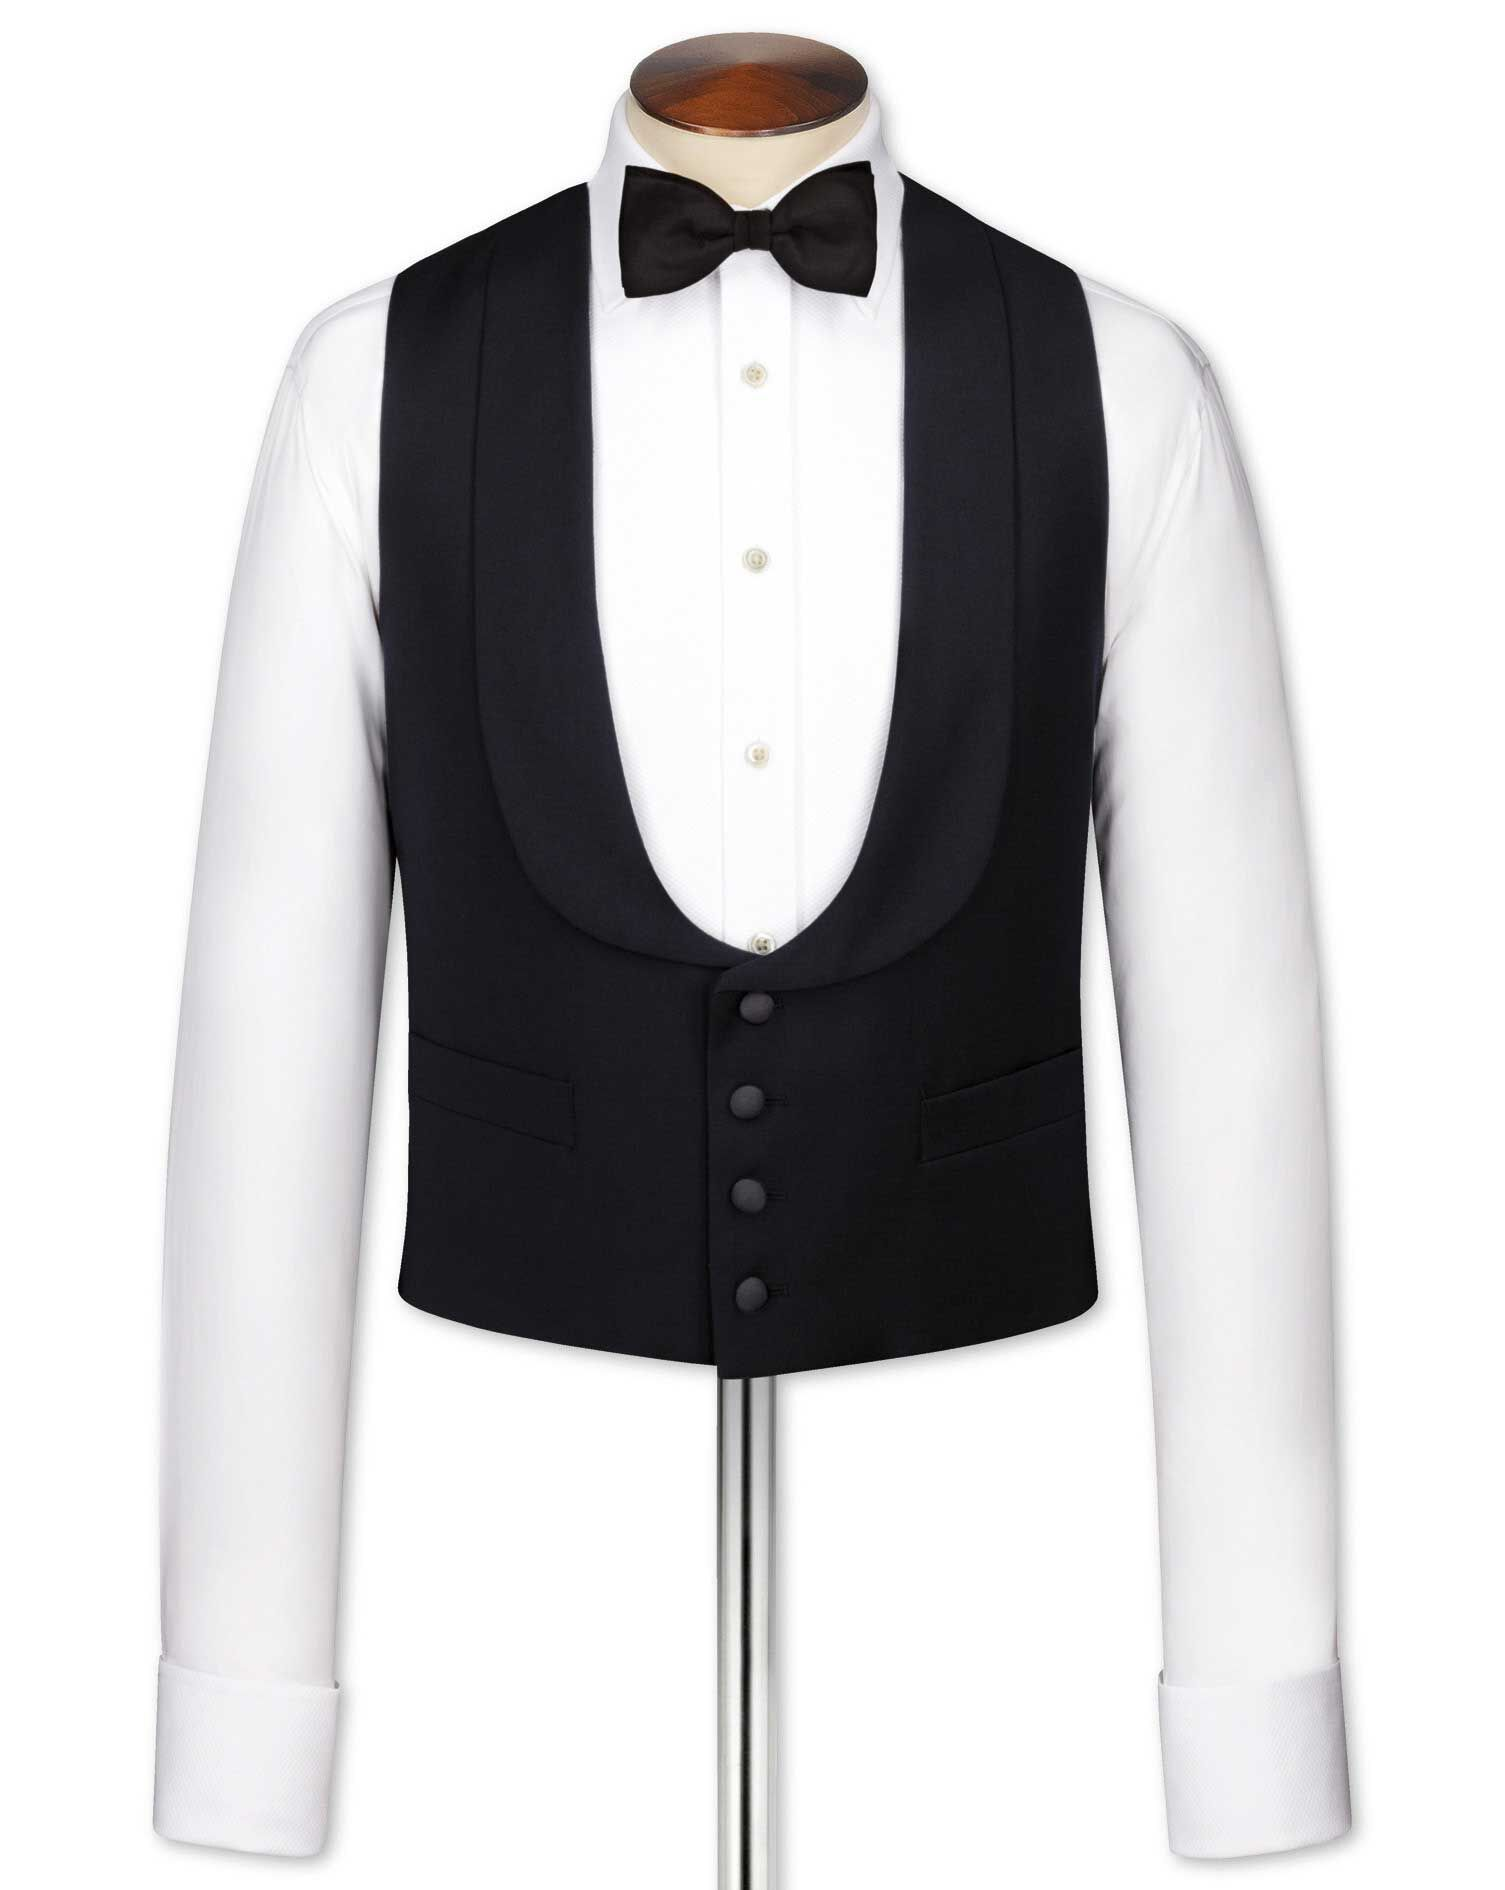 1920s Mens Formal Wear Clothing Charles Tyrwhitt Black tuxedo waistcoat £70.00 AT vintagedancer.com